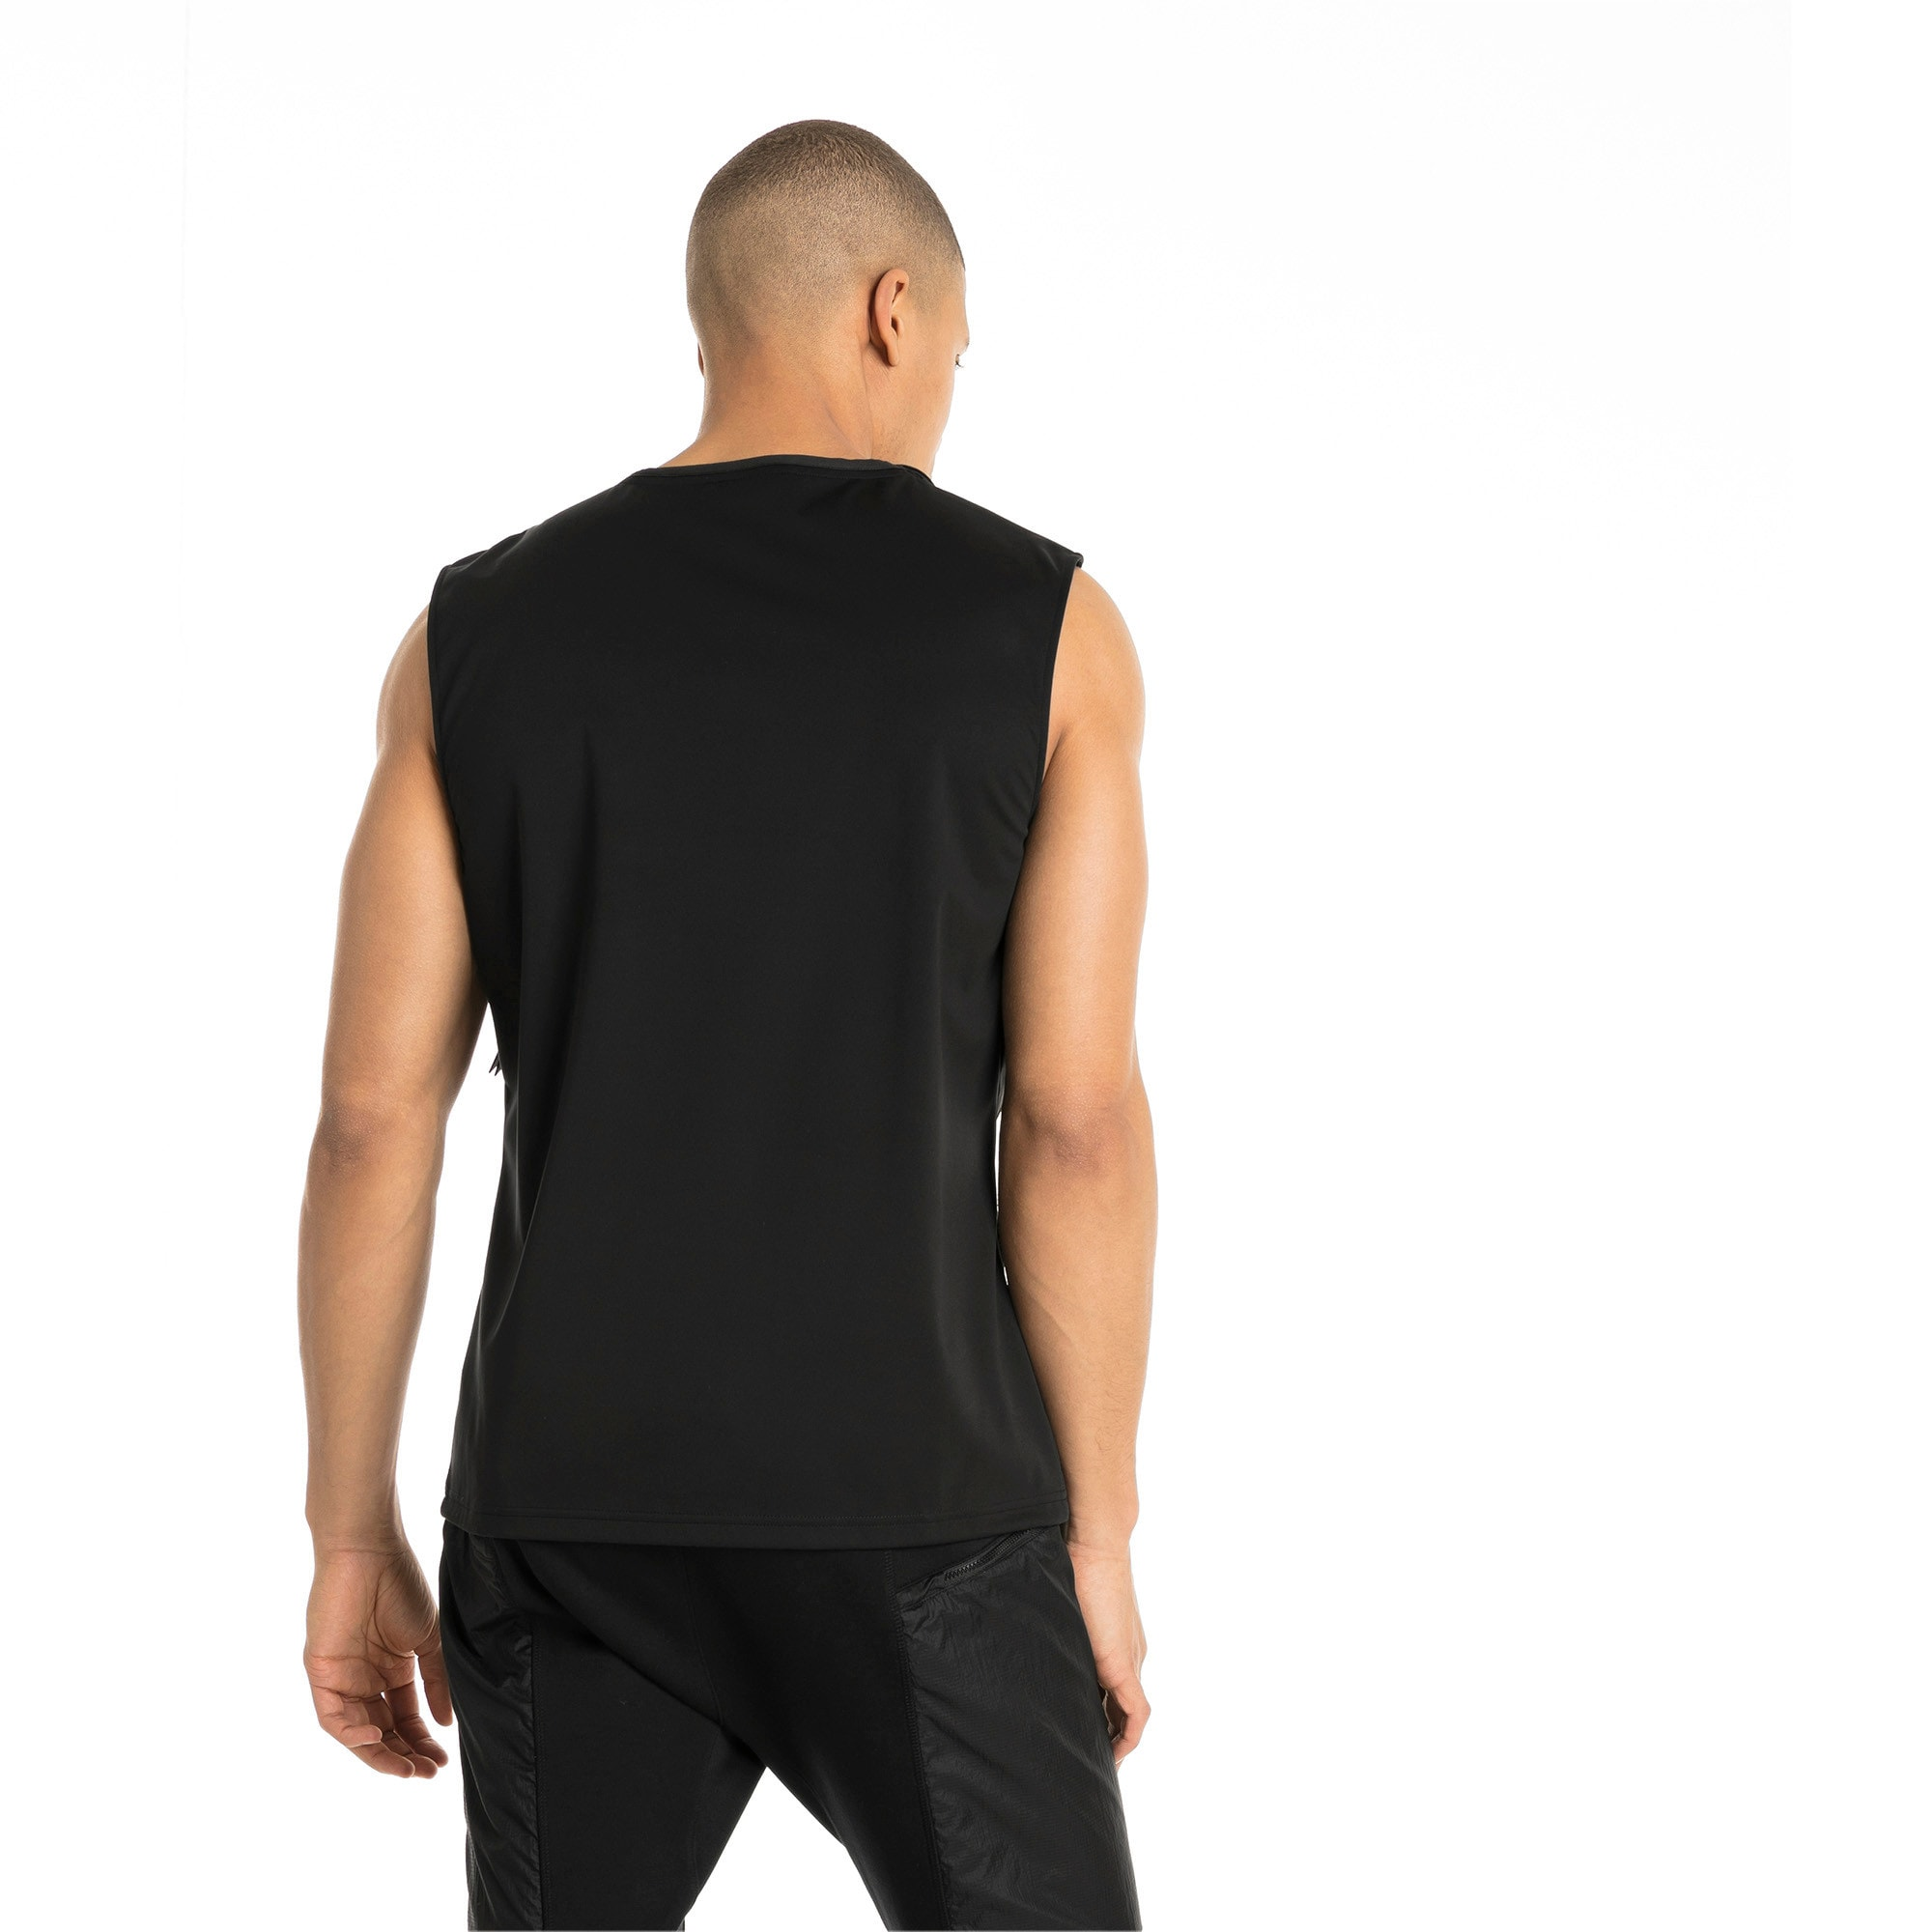 Thumbnail 2 of NeverRunBack Men's Protect Vest, Puma Black, medium-IND